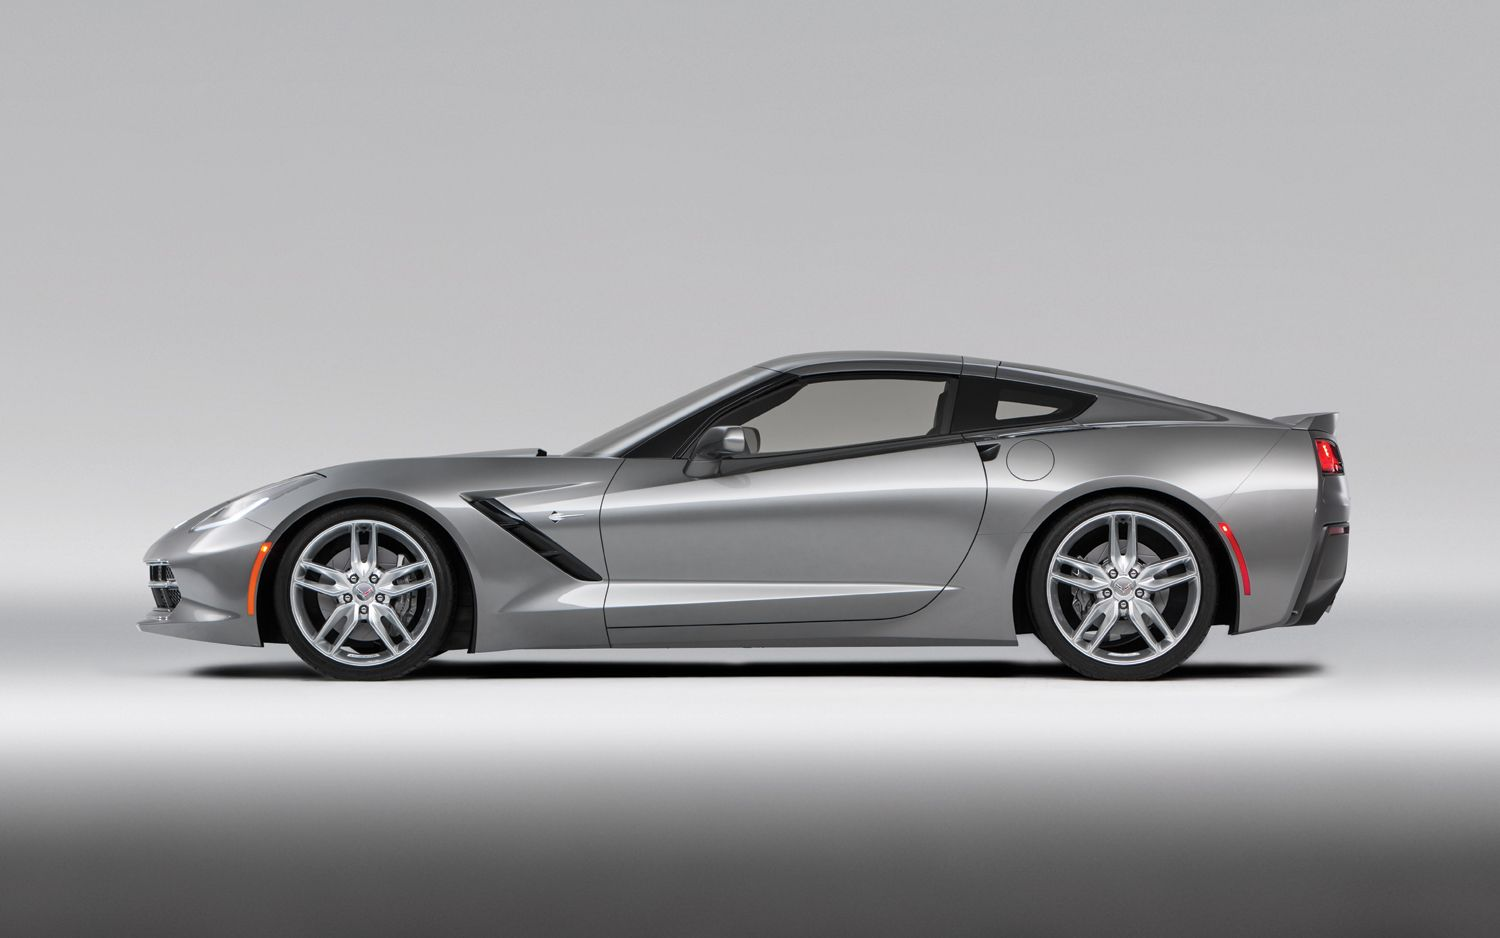 2014 Chevrolet Corvette C7 Thoughts from the 2013 Detroit